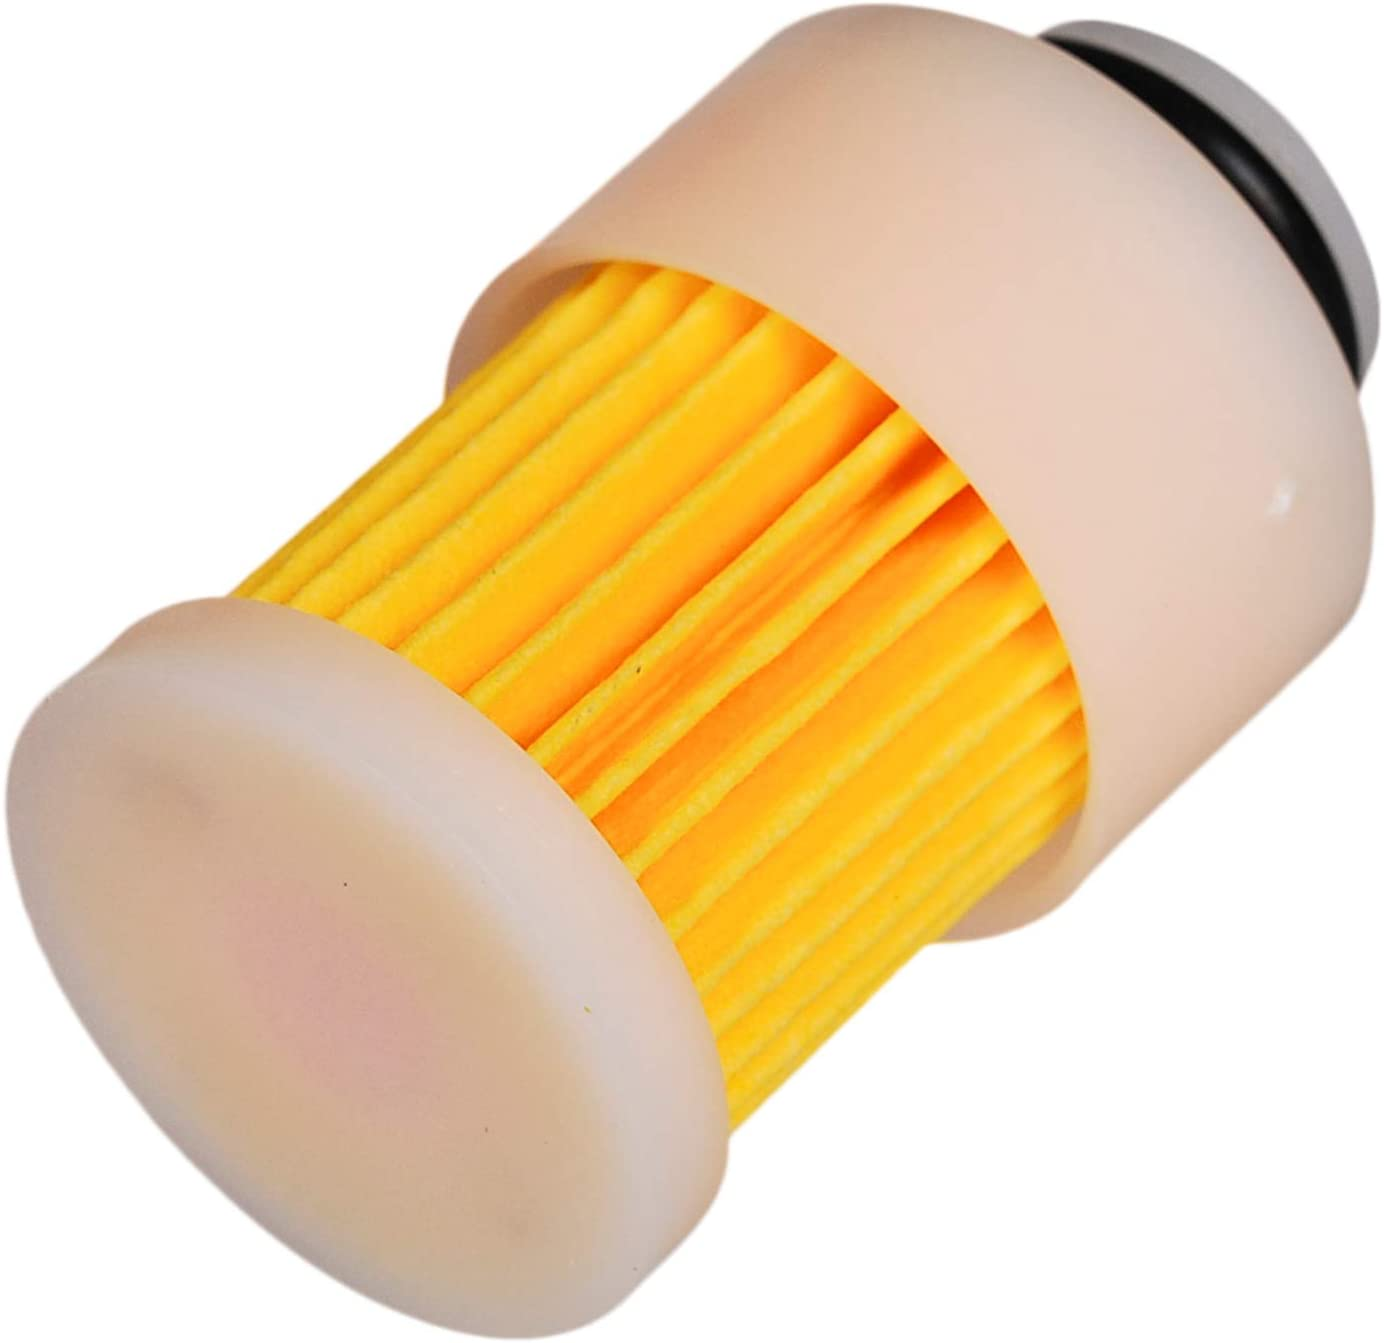 HIFROM Fuel Filter Replacement for 4 Stroke Yamaha Mercury Outboard Motor F50TLRD F60TJRD F60TLRD T60TLRD F75TLRD F90TJRD F115TLRZ F115TLRD LF115TXRD 68V-24563-00-00 881540 18-7979 (Pack of 4)